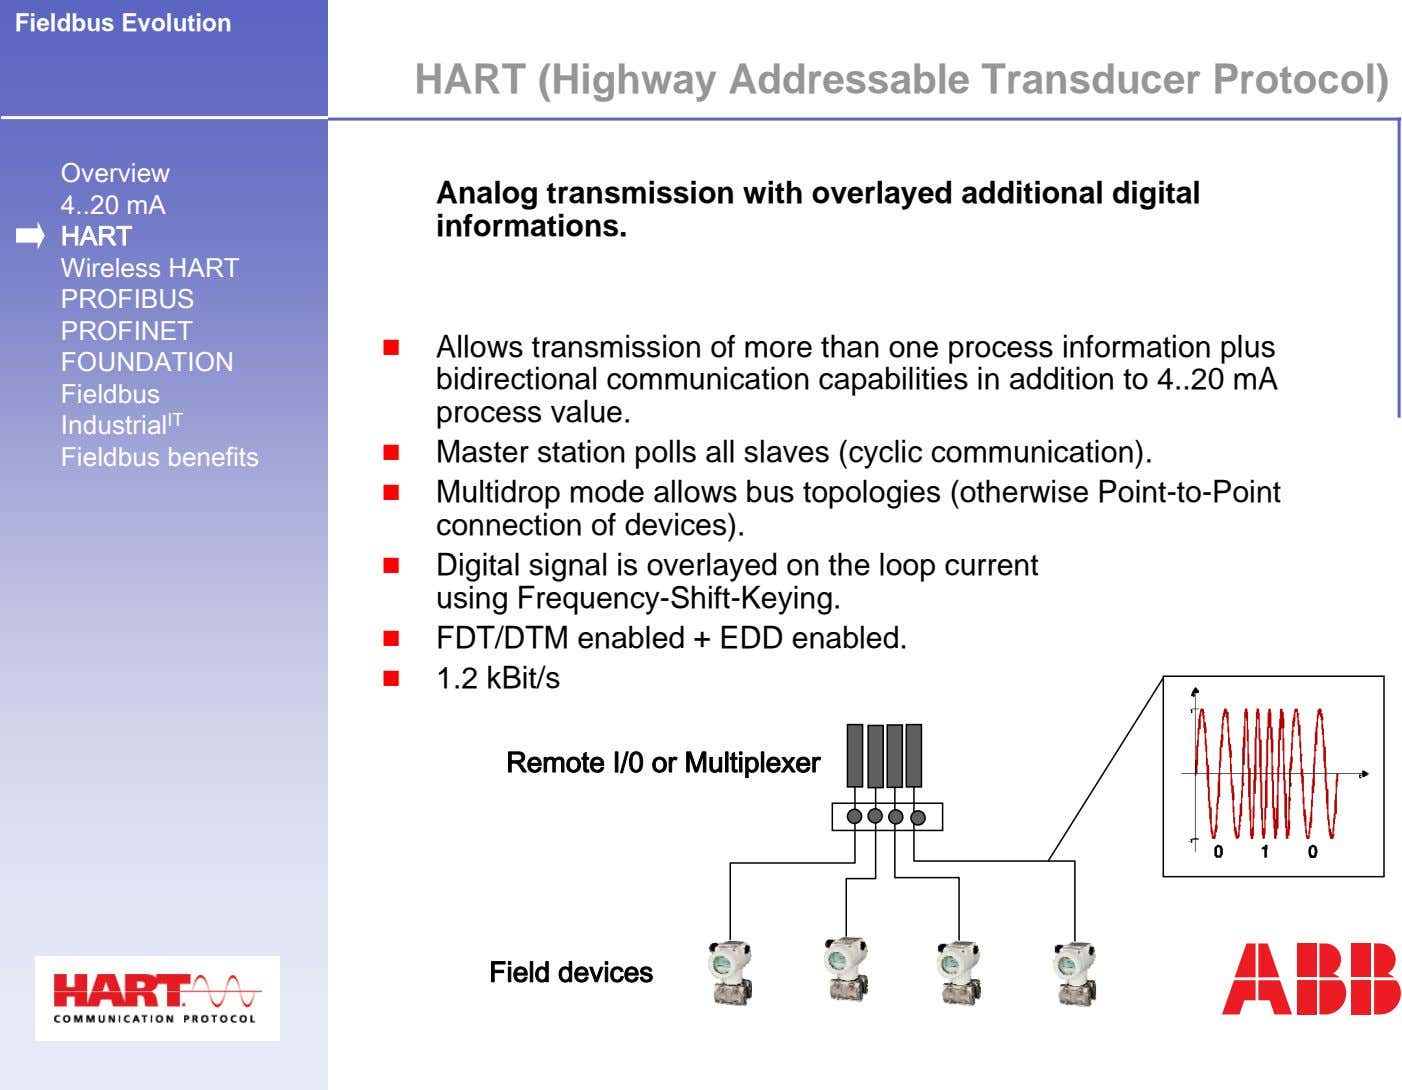 Fieldbus Evolution HART (Highway Addressable Transducer Protocol) Overview 4 20 mA Analog transmission with